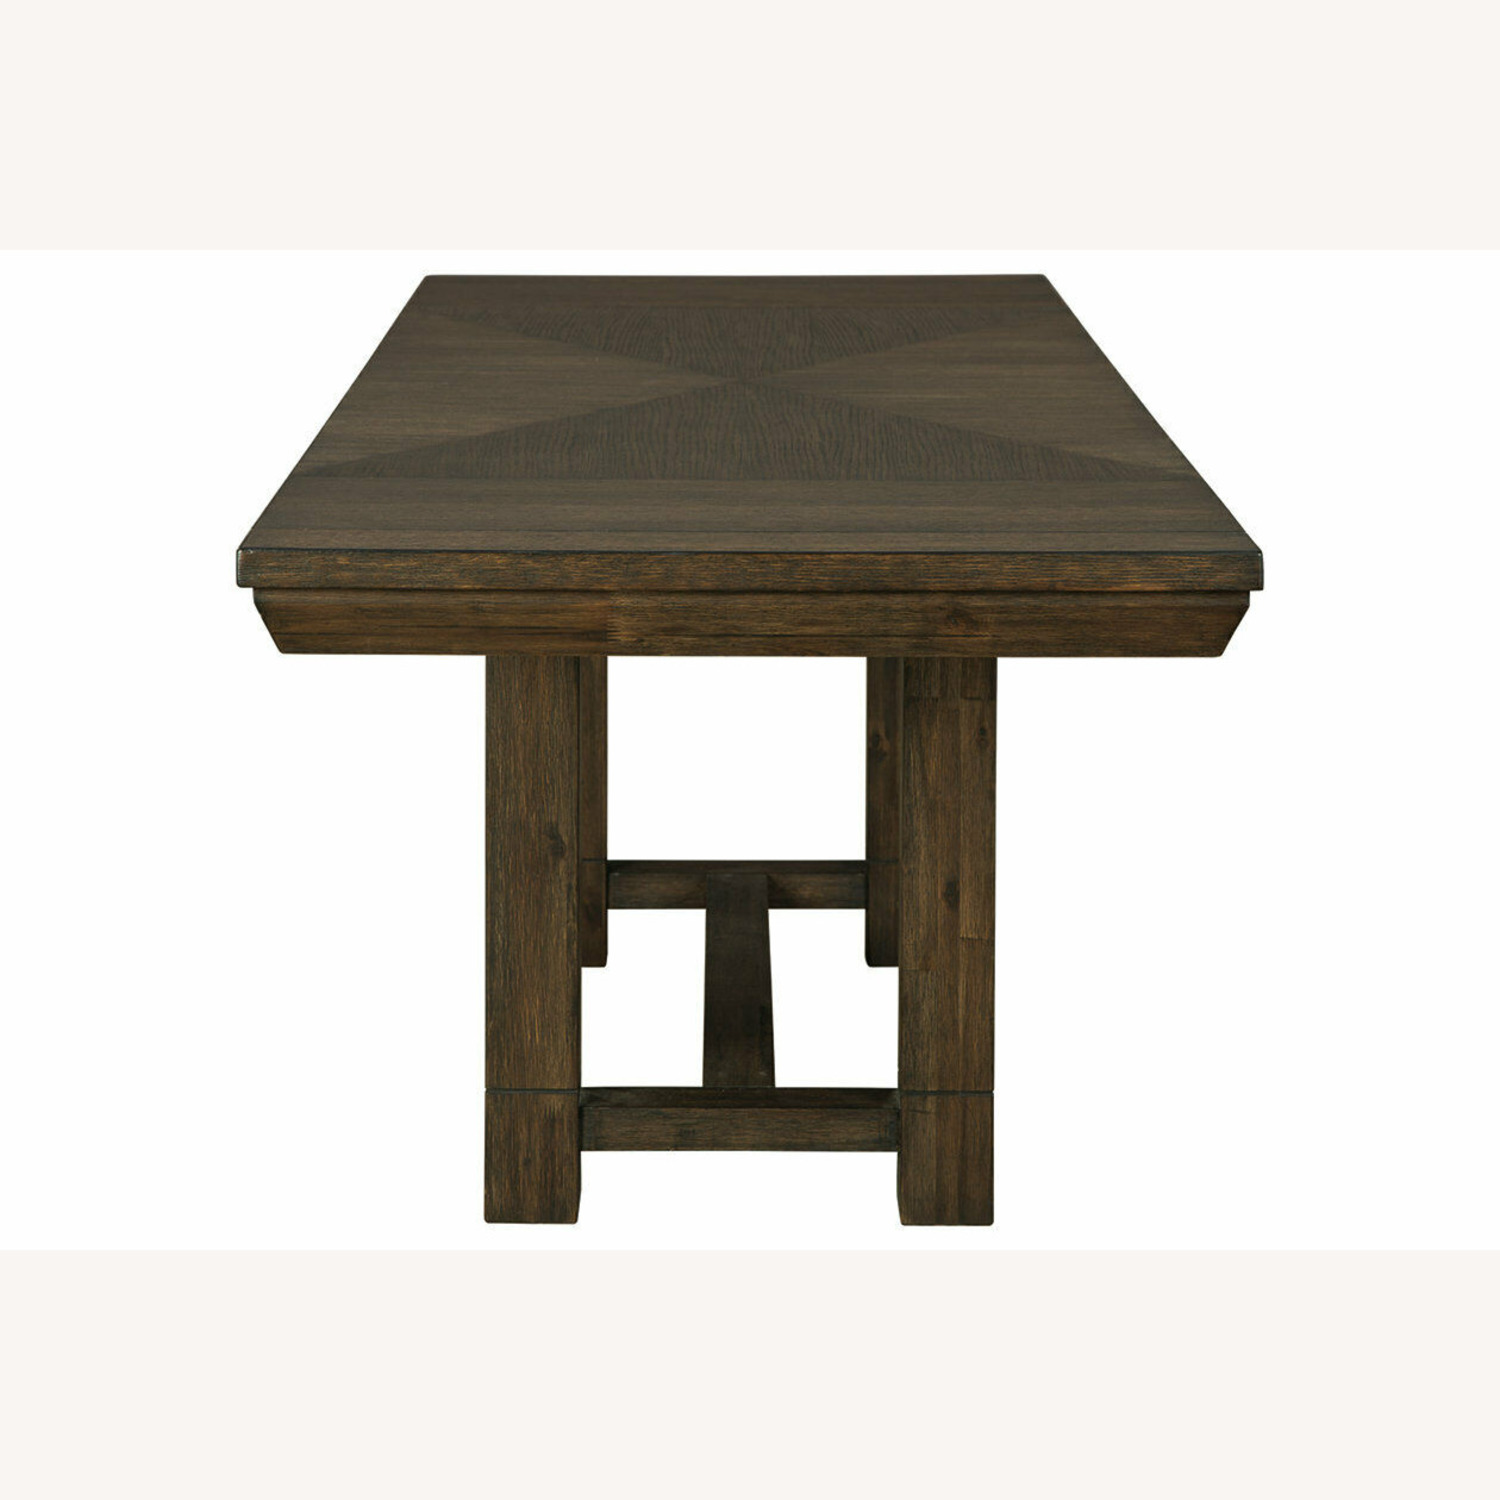 Ashley Furniture Dellbeck Extendable Dining Table - image-3